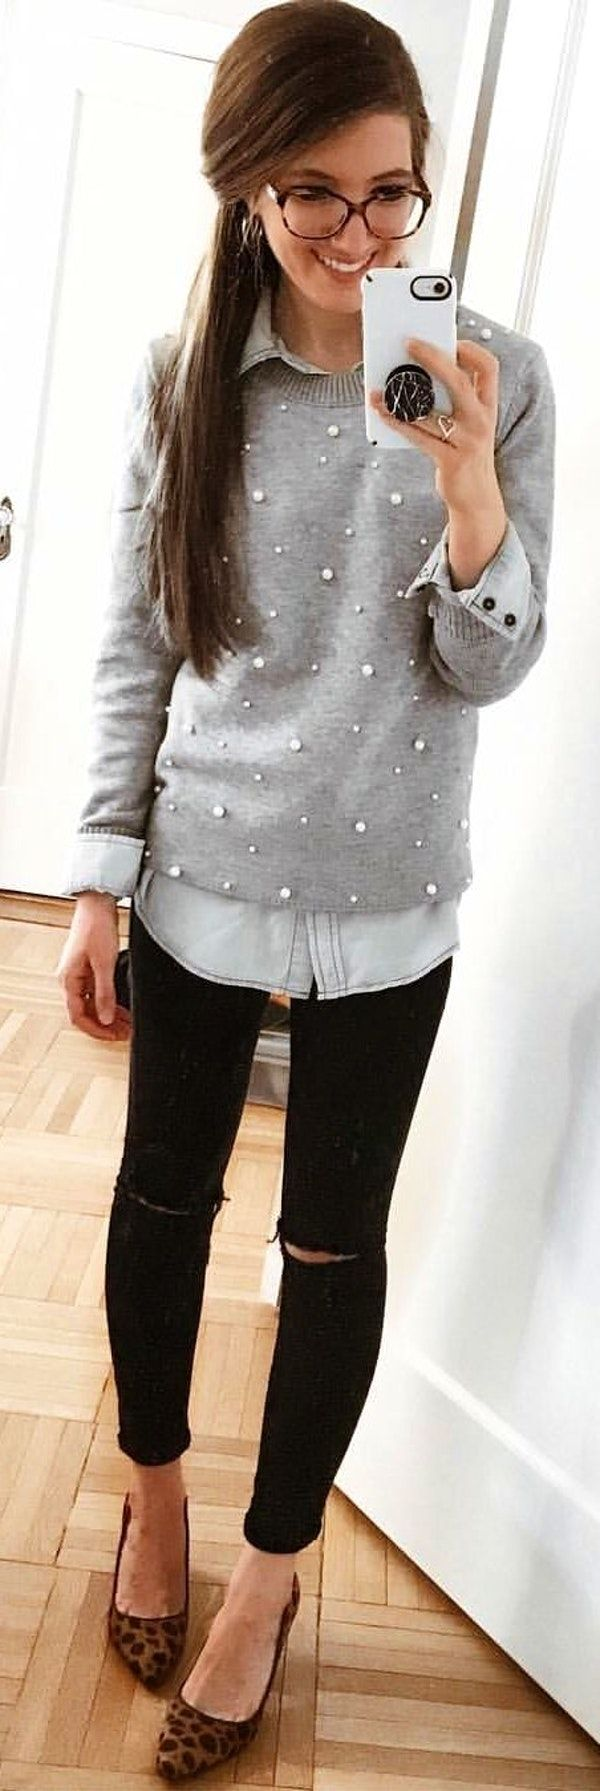 #winter #outfits  gray long-sleeved collared shirt. Pic by @_lizloves.